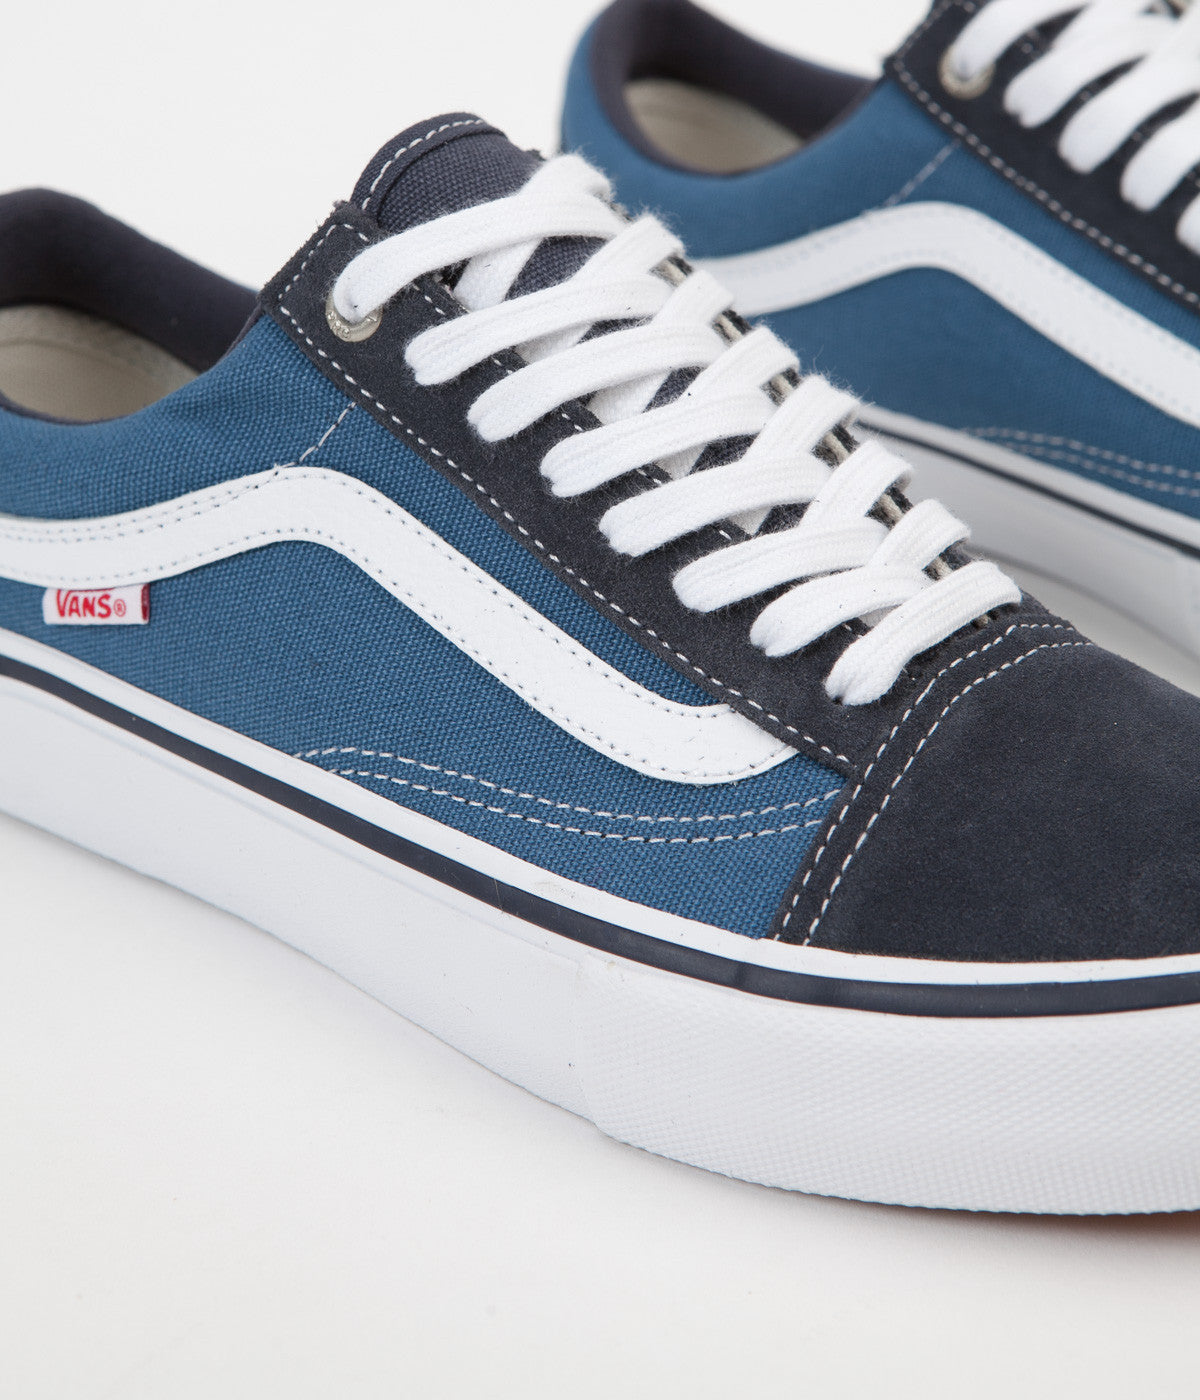 b18aefdf18b2 ... Vans Old Skool Pro Shoes - Navy   STV Navy   White ...